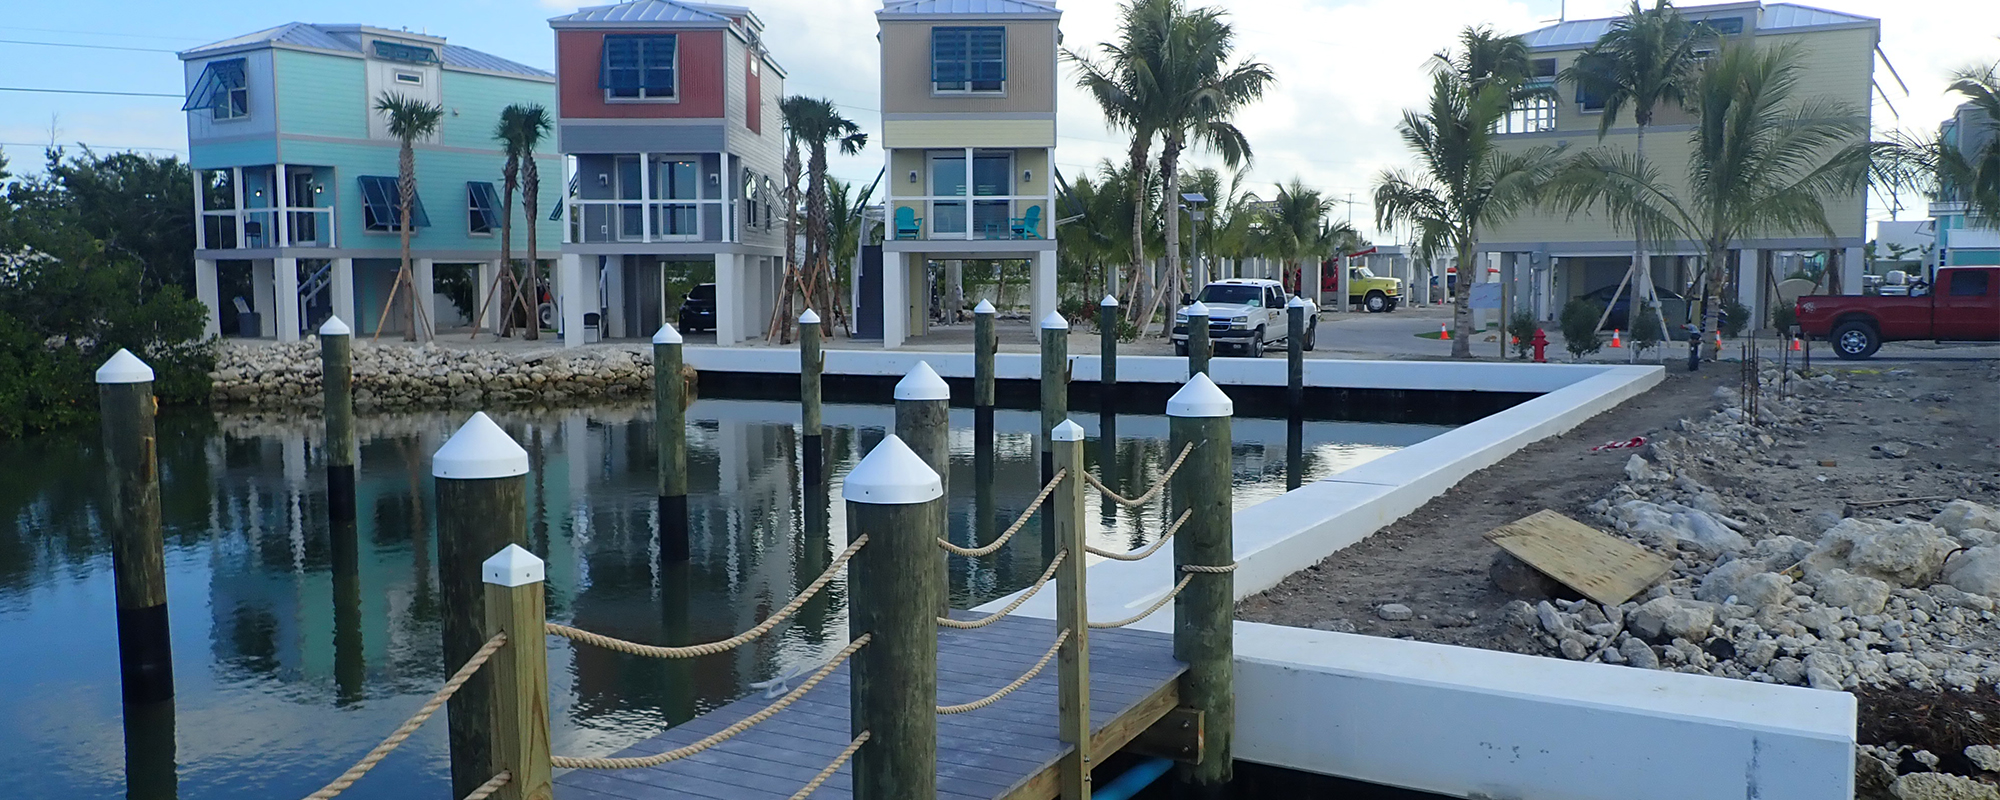 Seawall and Marina Design at Ocean Breeze Community